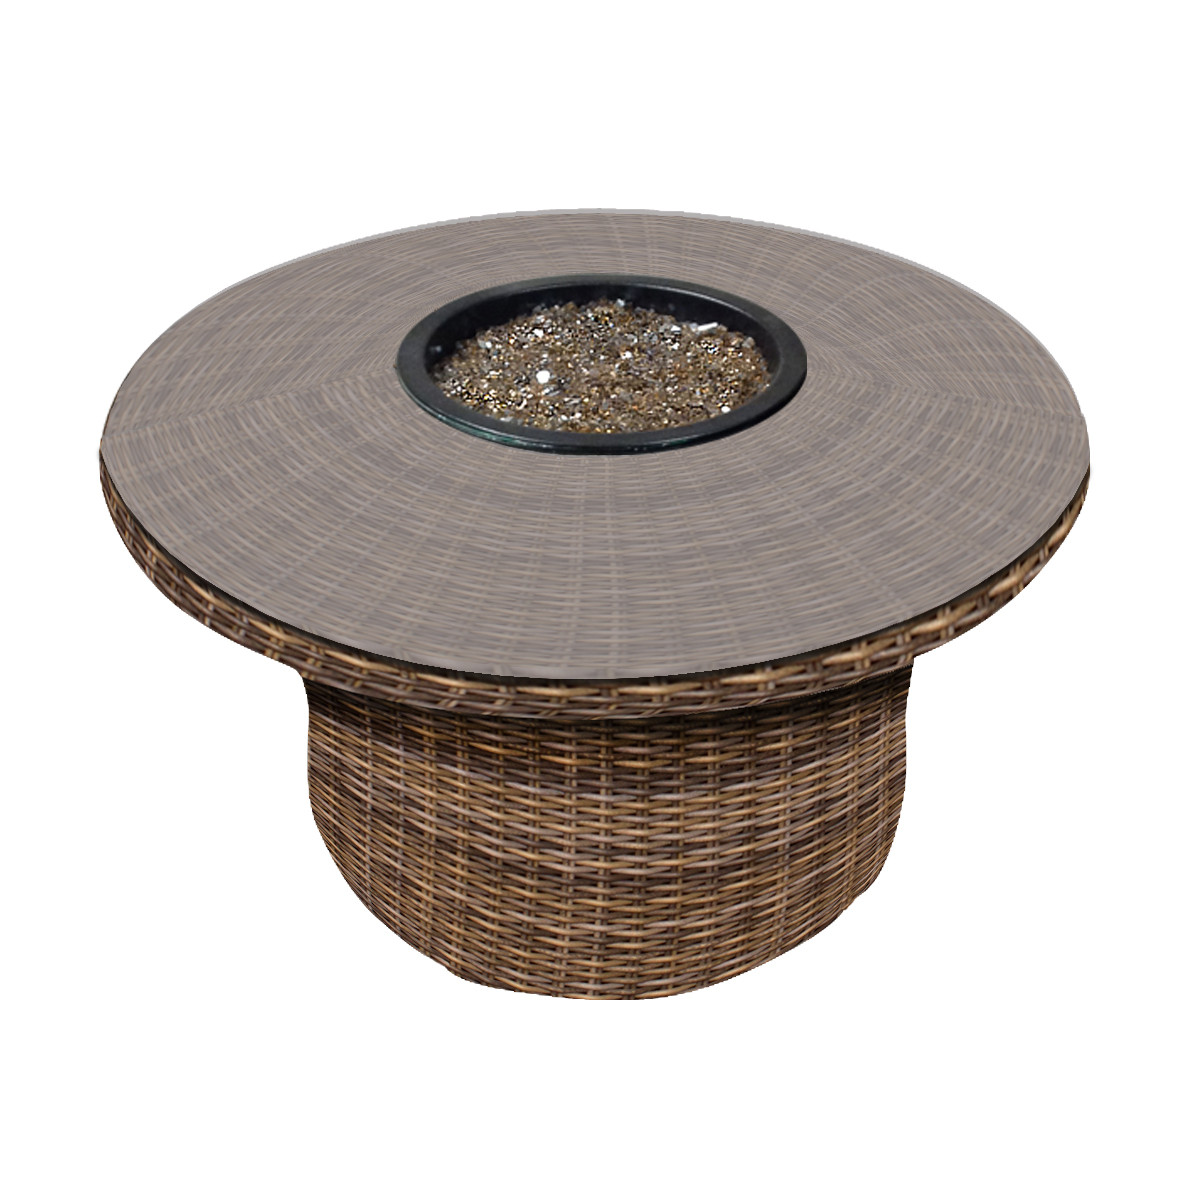 Remarkable Forever Patio Cypress 42 Round Wicker Fire Table By Northcape International Download Free Architecture Designs Photstoregrimeyleaguecom